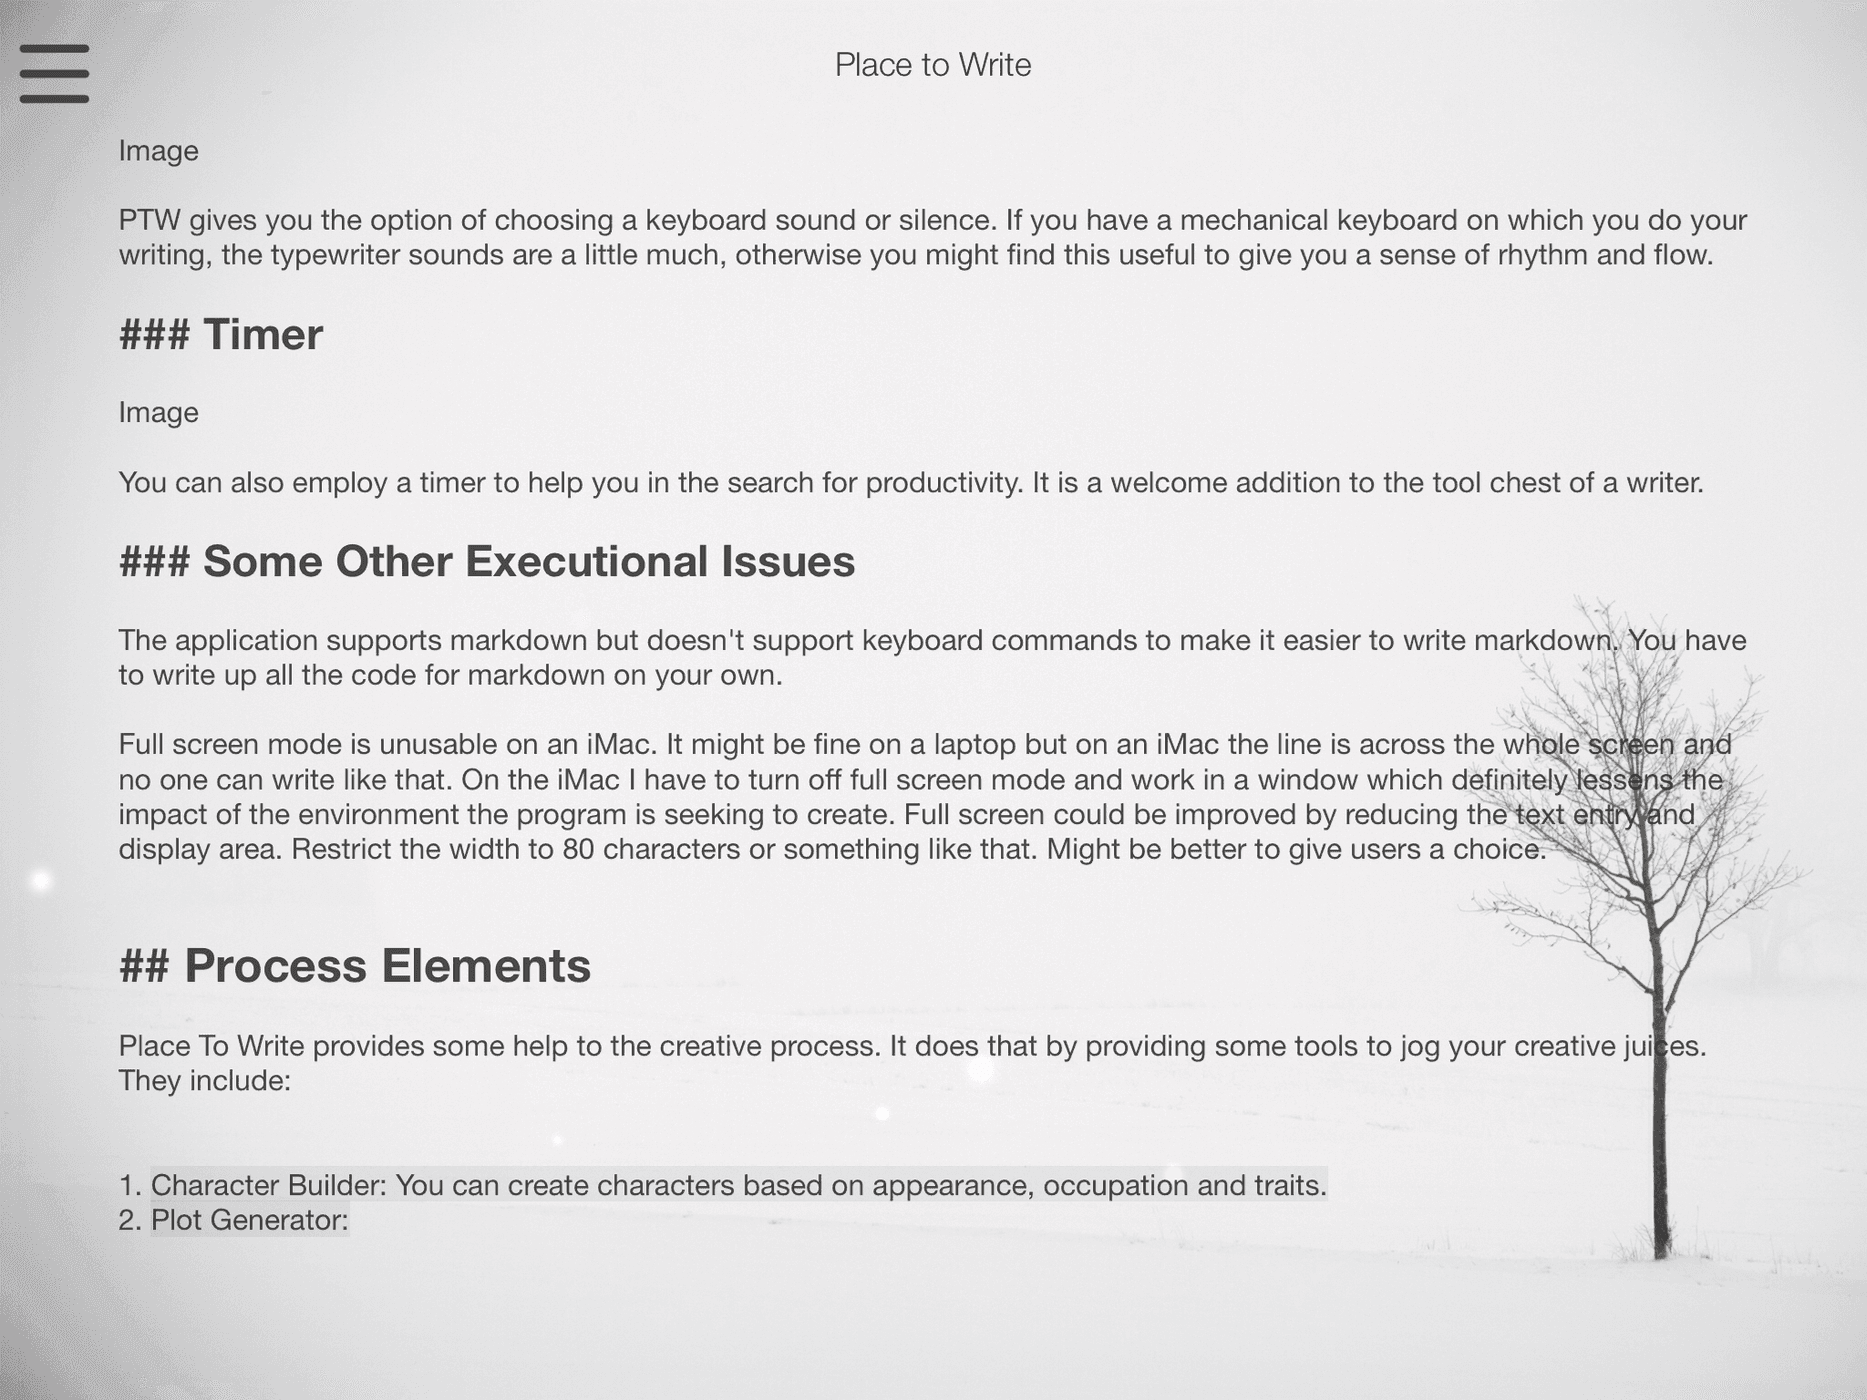 iPad Version of Place To Write